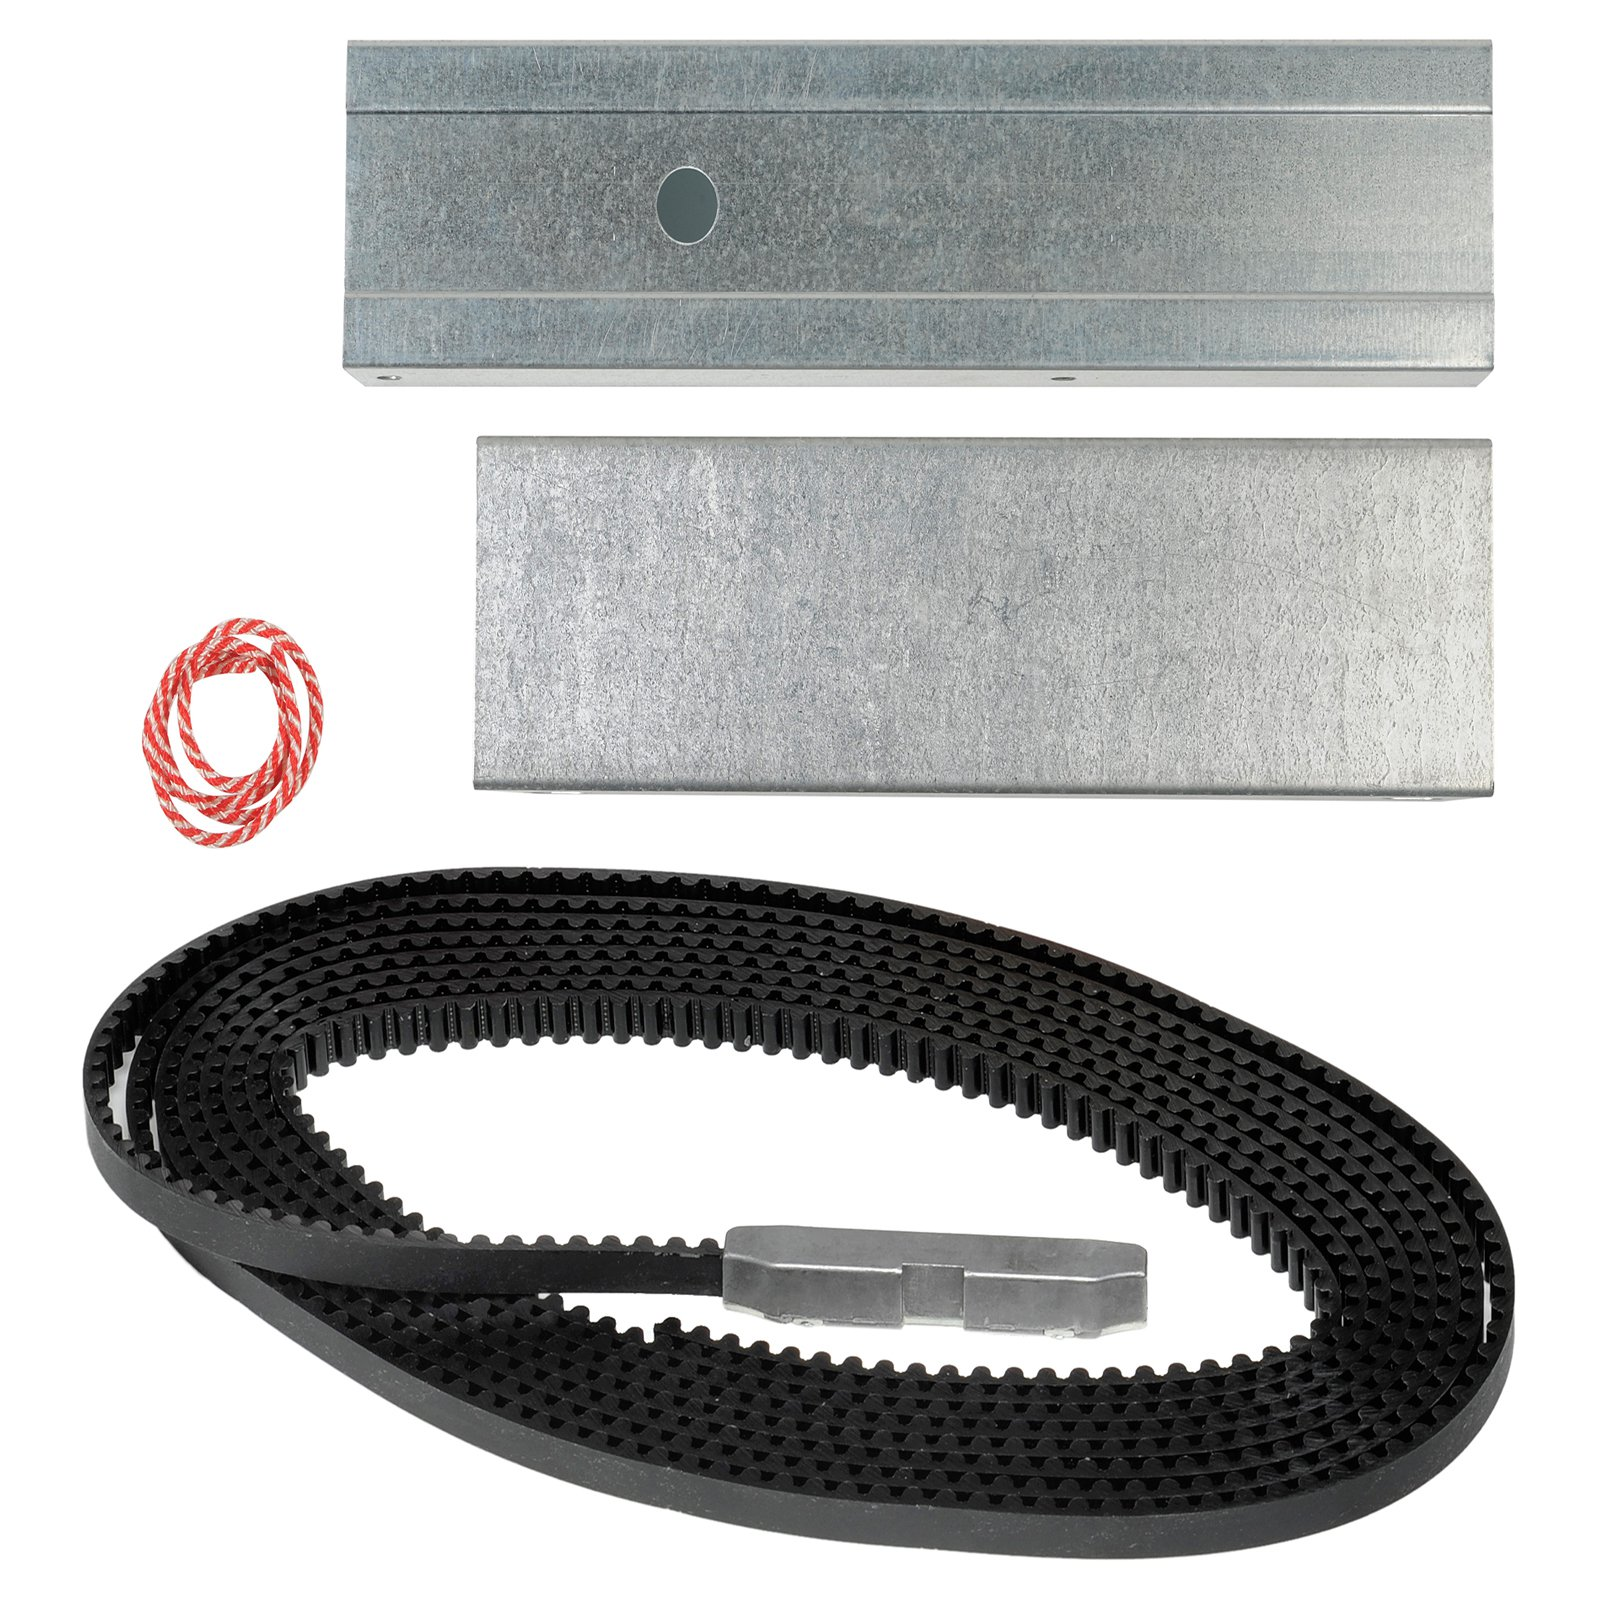 Genie 37302r C-Channel Belt Extension Kit